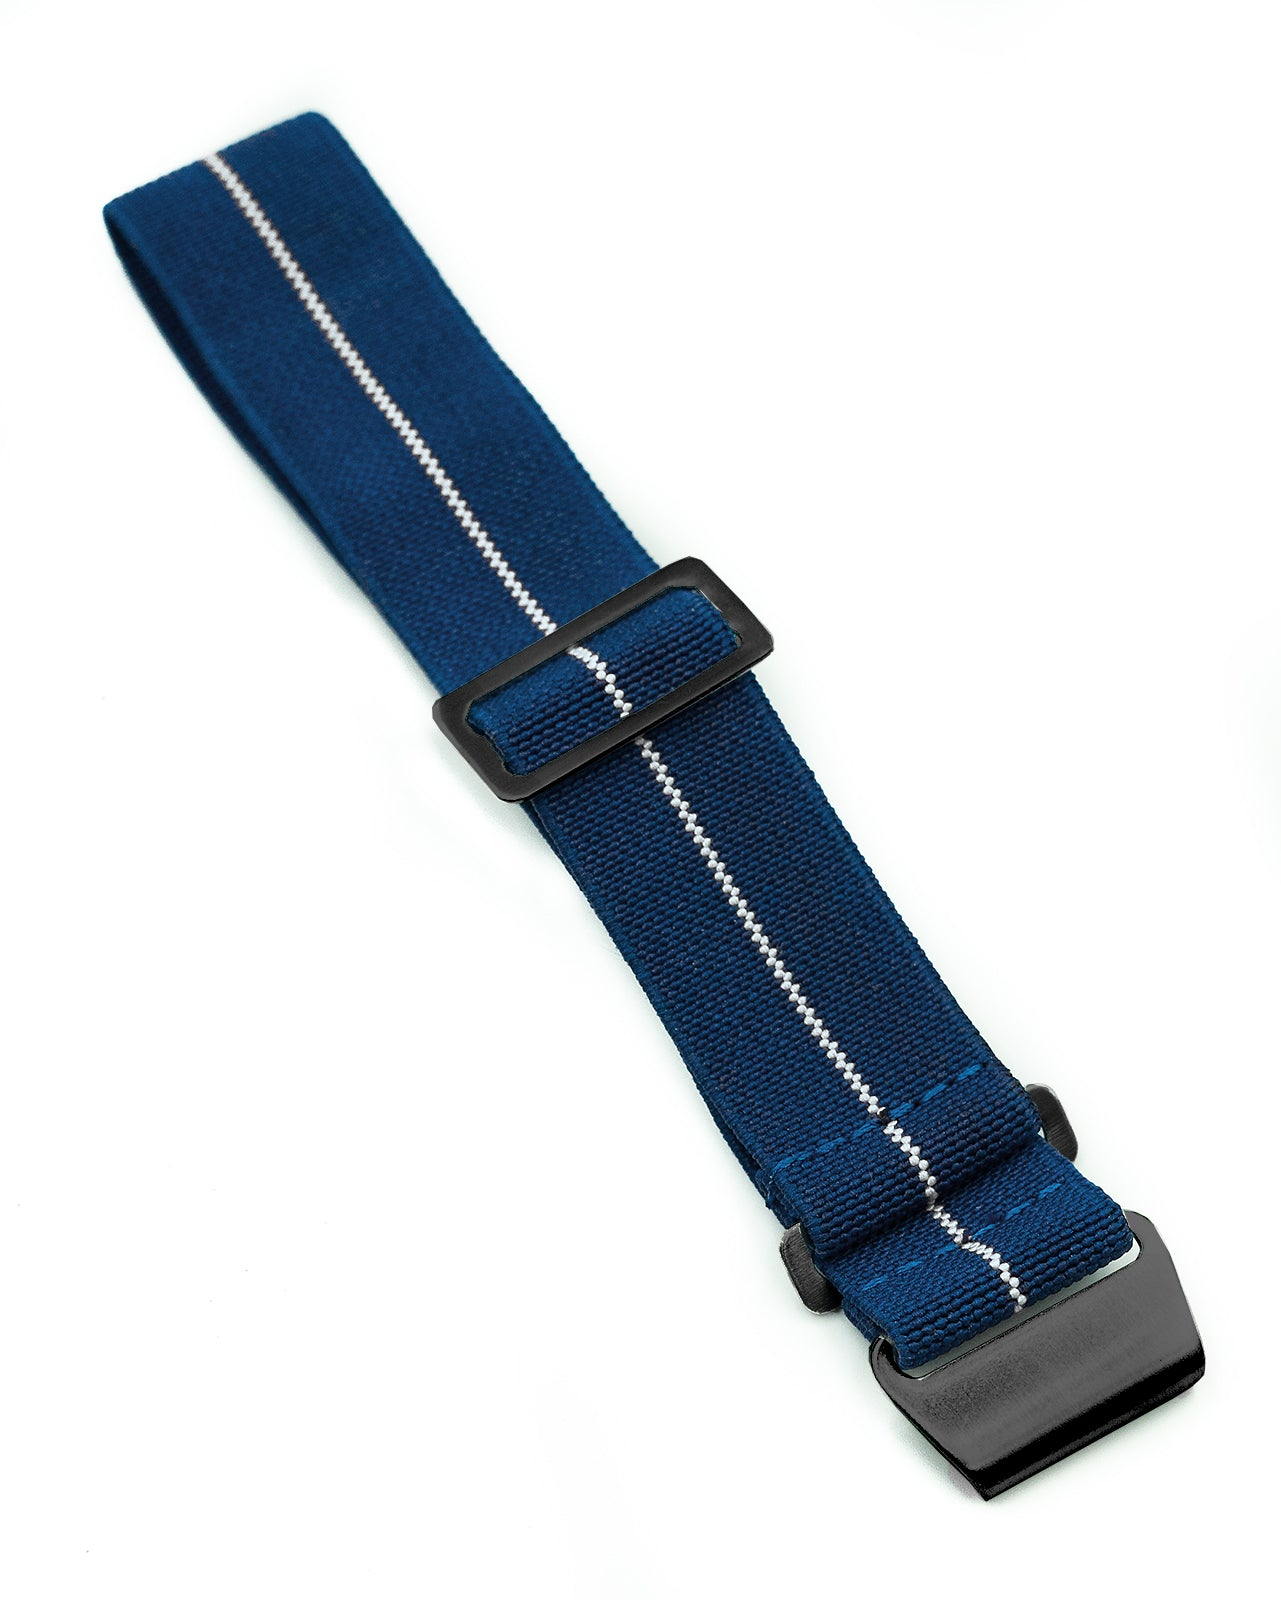 PARA Elastic (Stealth) - Navy Blue with White Centerline